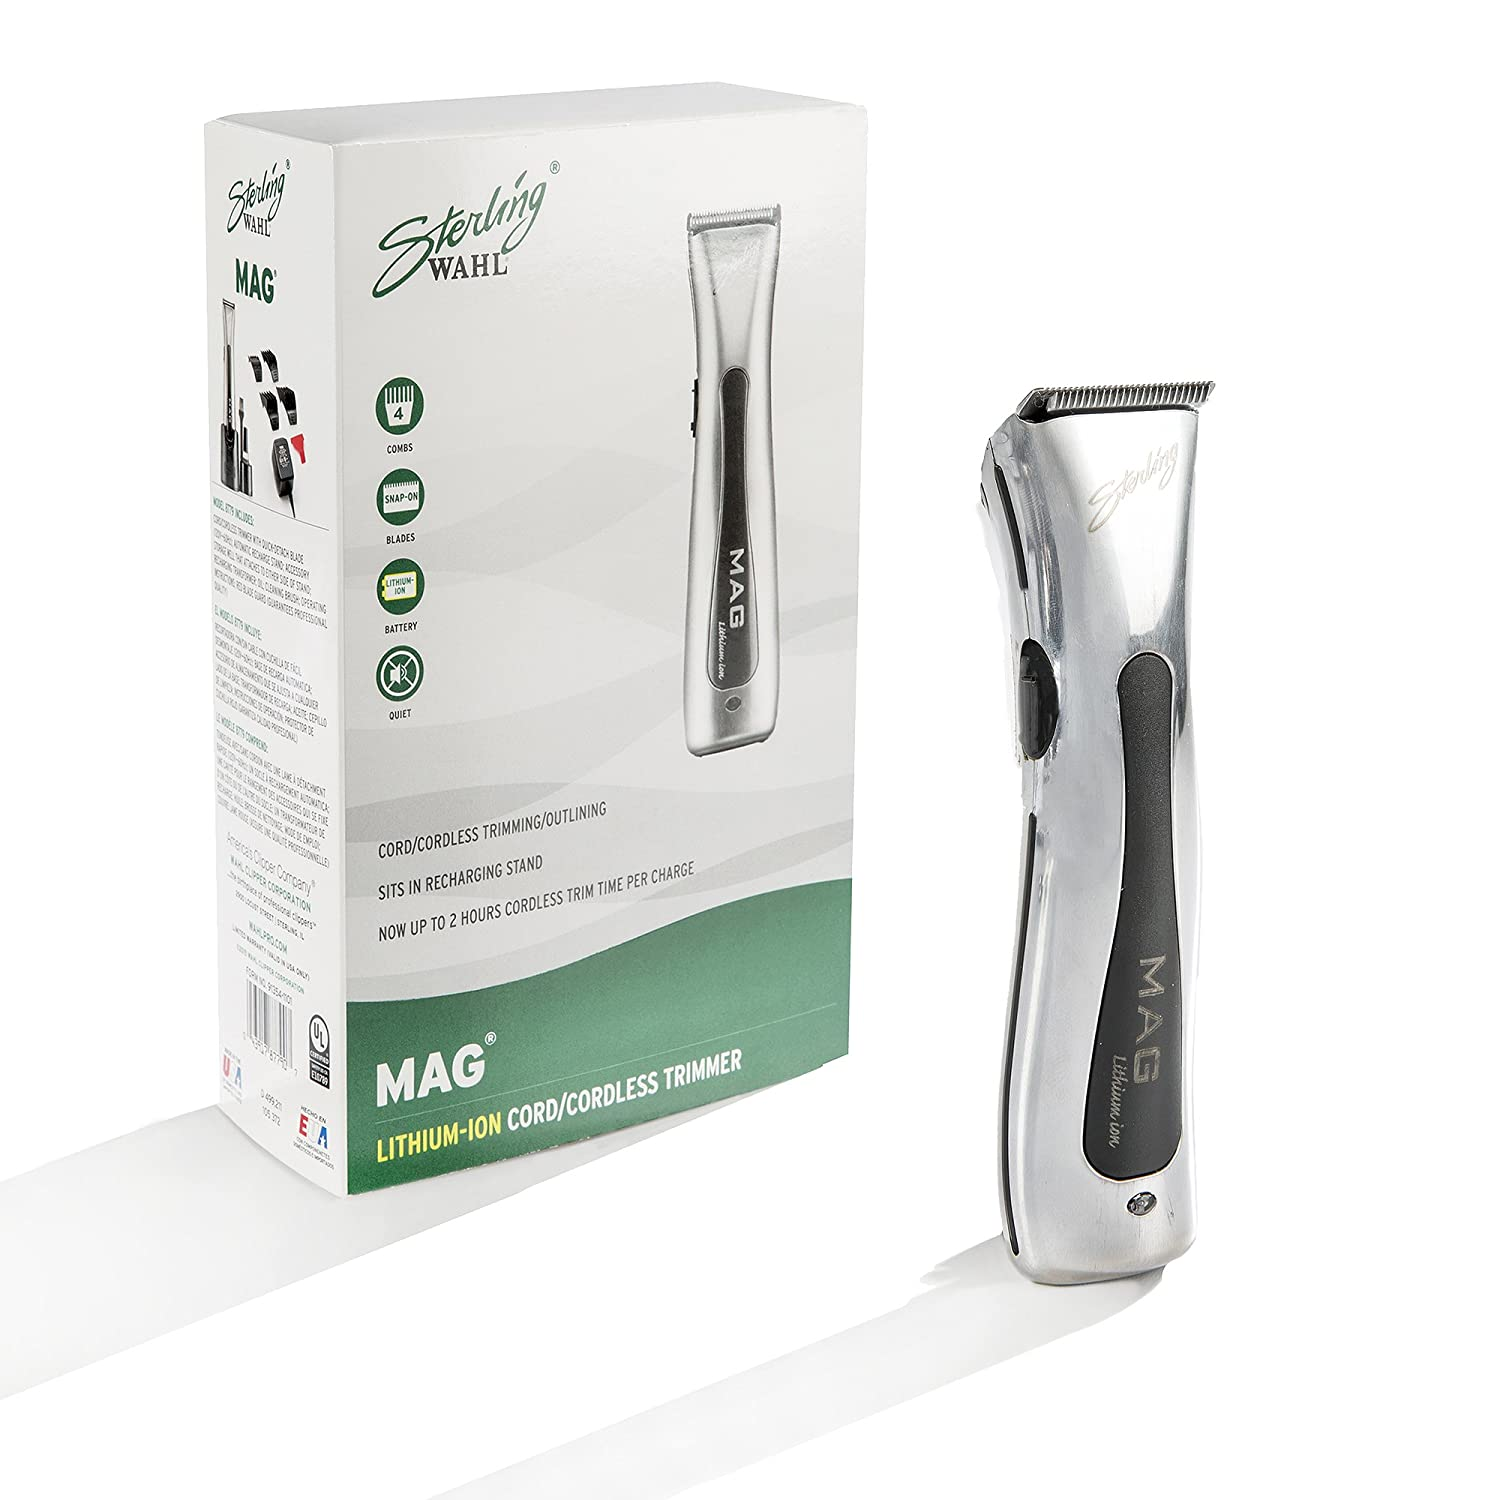 Wahl Professional Sterling Mag Trimmer 8779 Great for Professional Stylists and Barbers Rotary Motor Silver